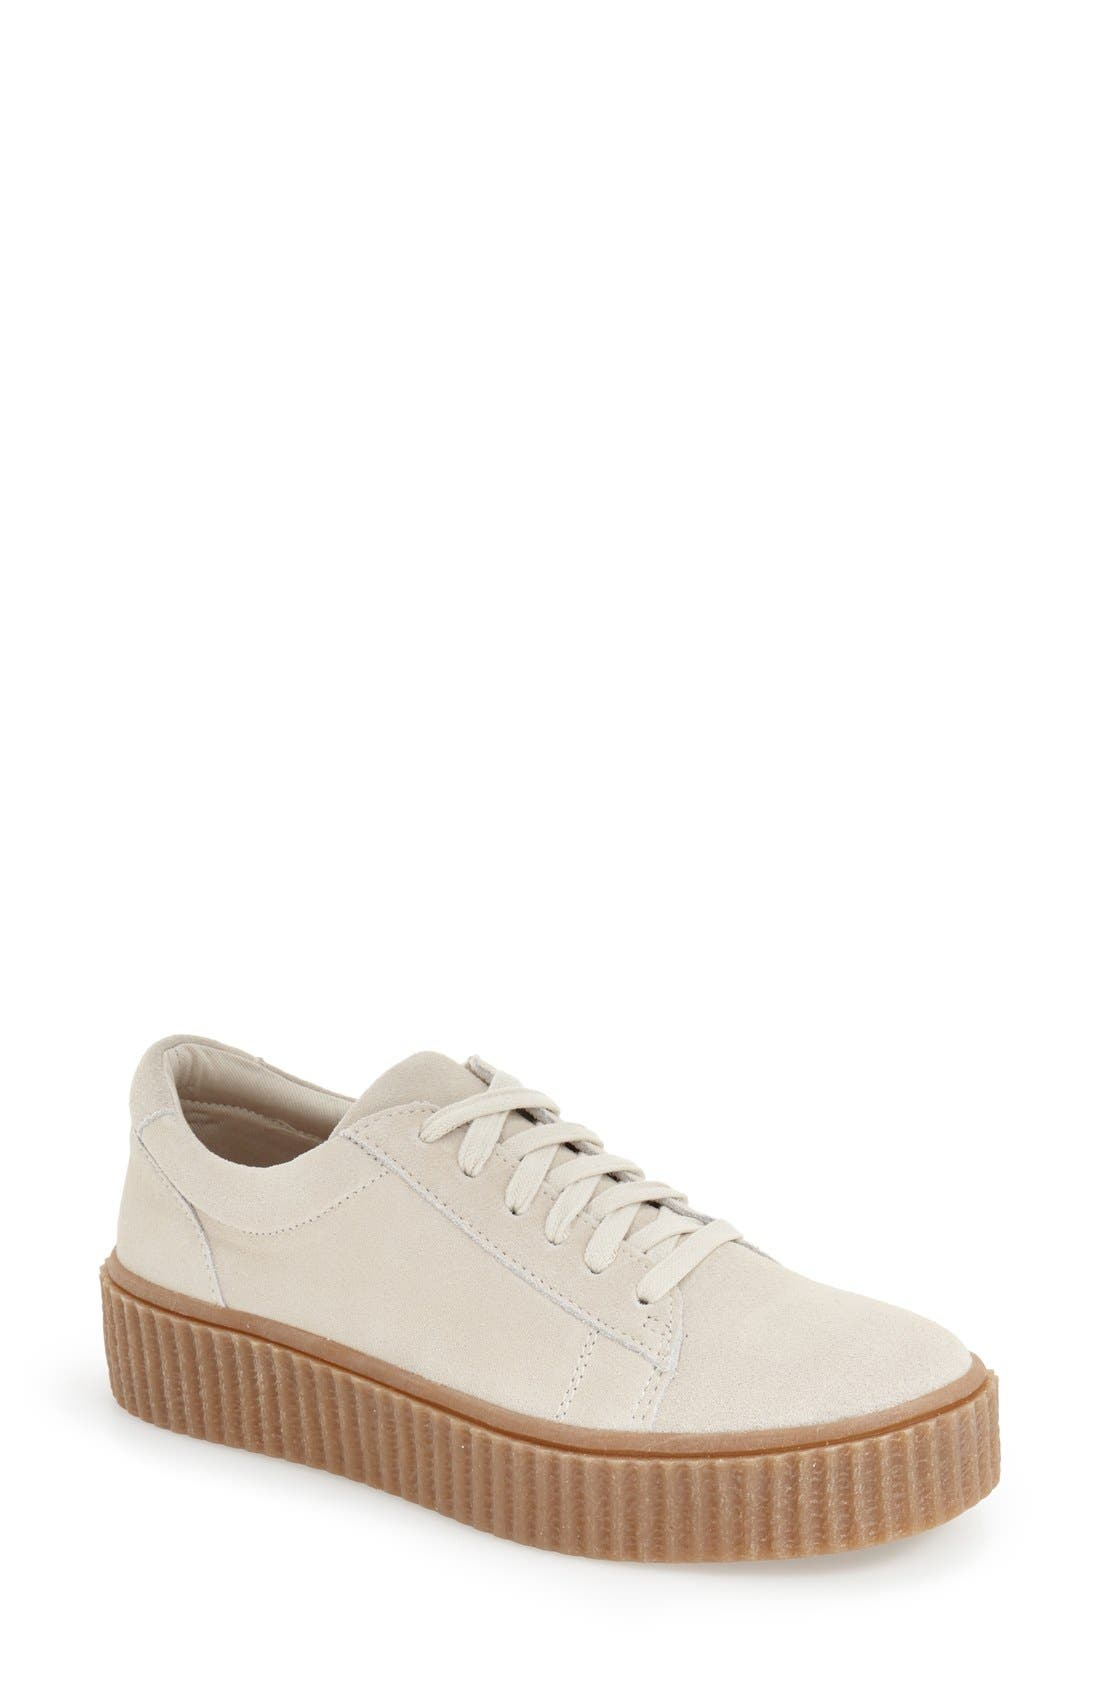 Alternate Image 1 Selected - Steve Madden 'Holllly' Platform Sneaker (Women)